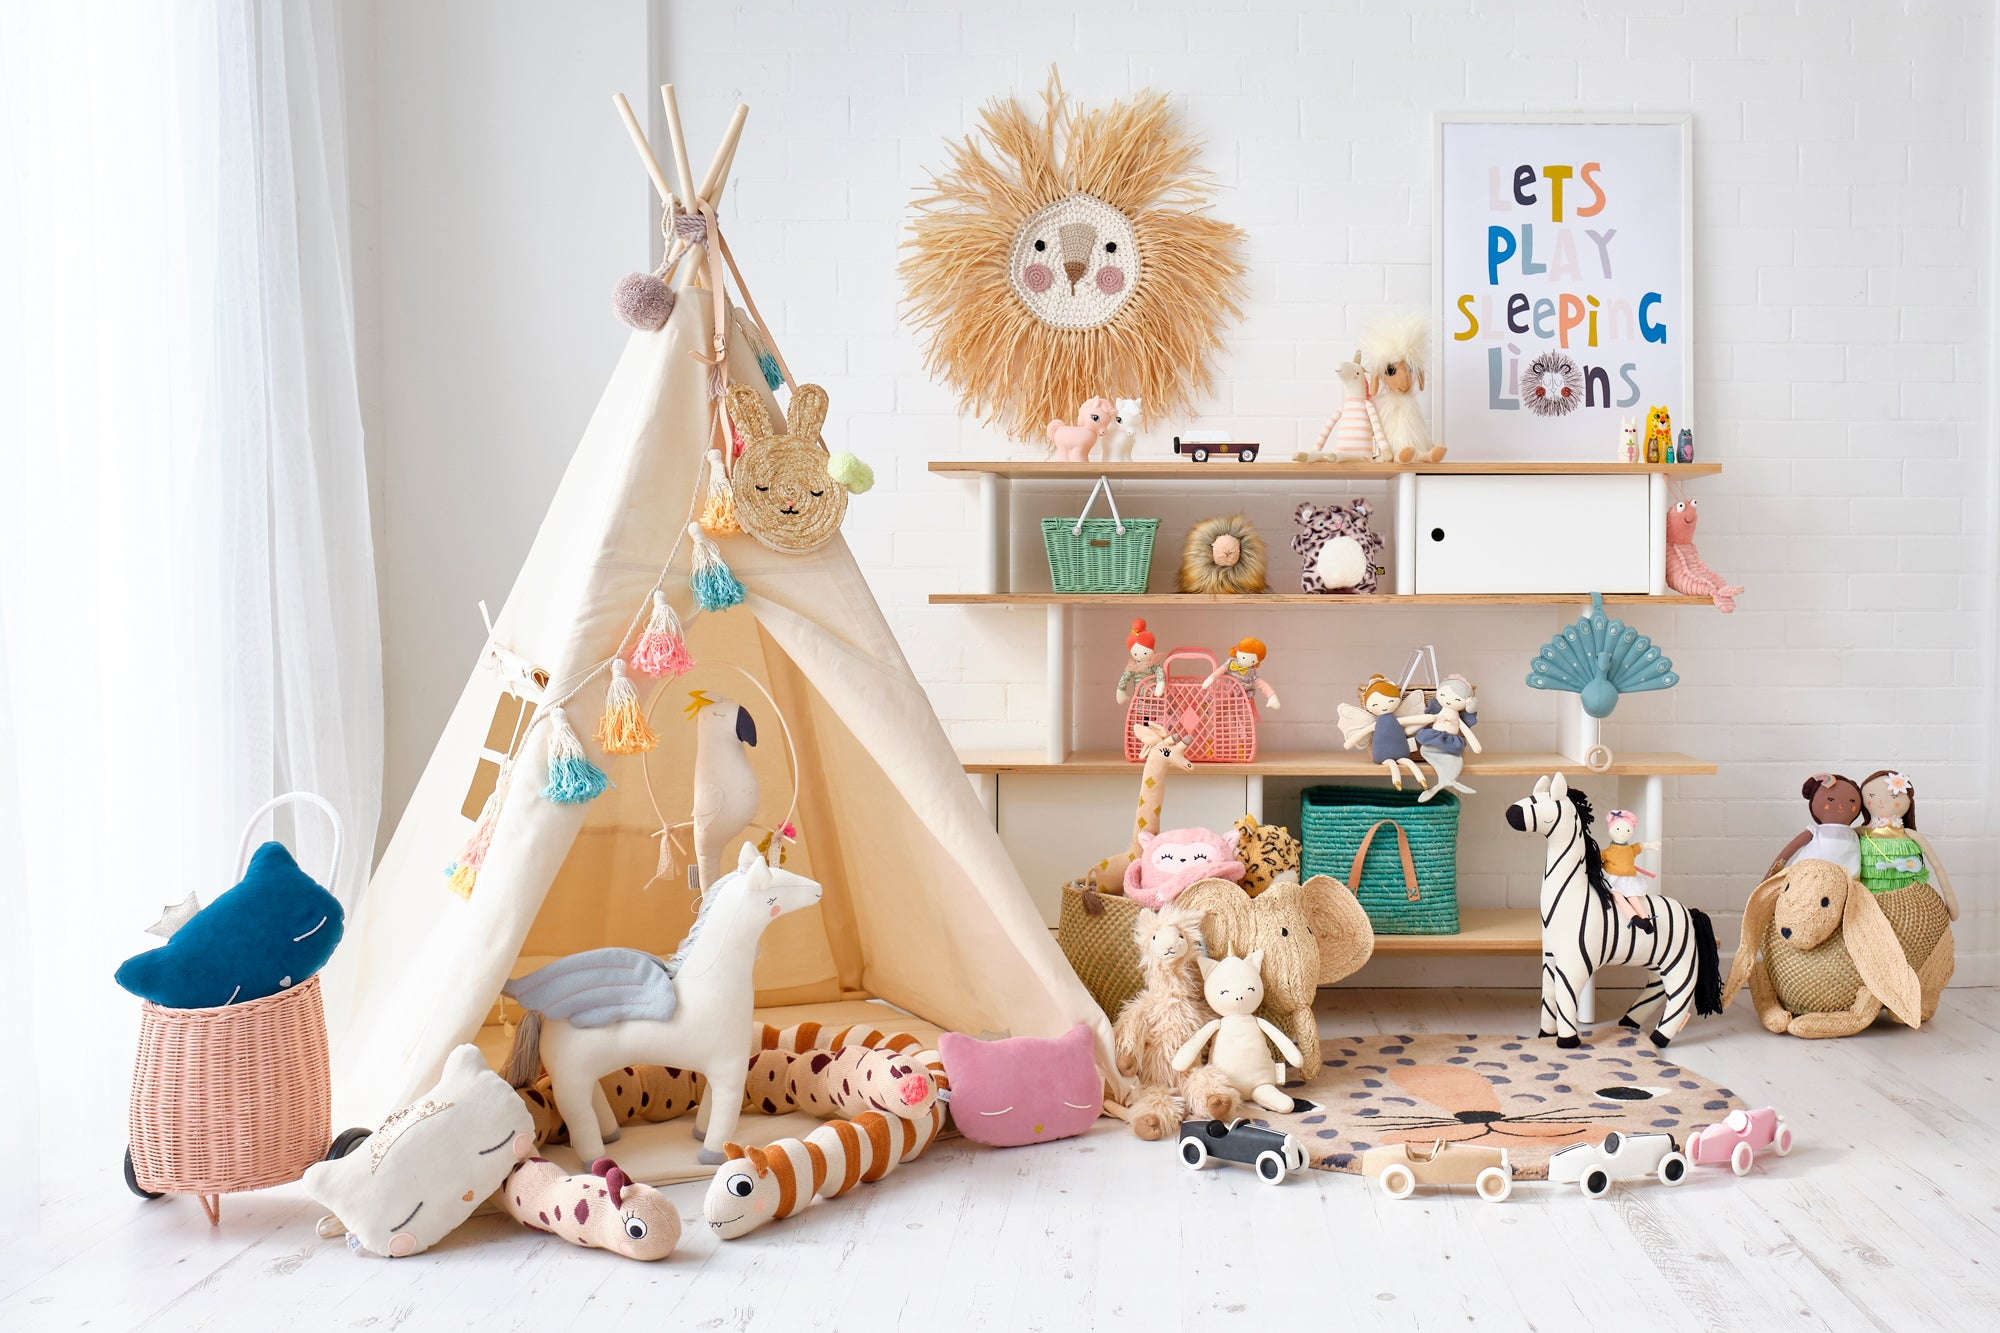 'Savannah!' Children's Playroom, Toys and Accessories, styled by Bobby Rabbit.